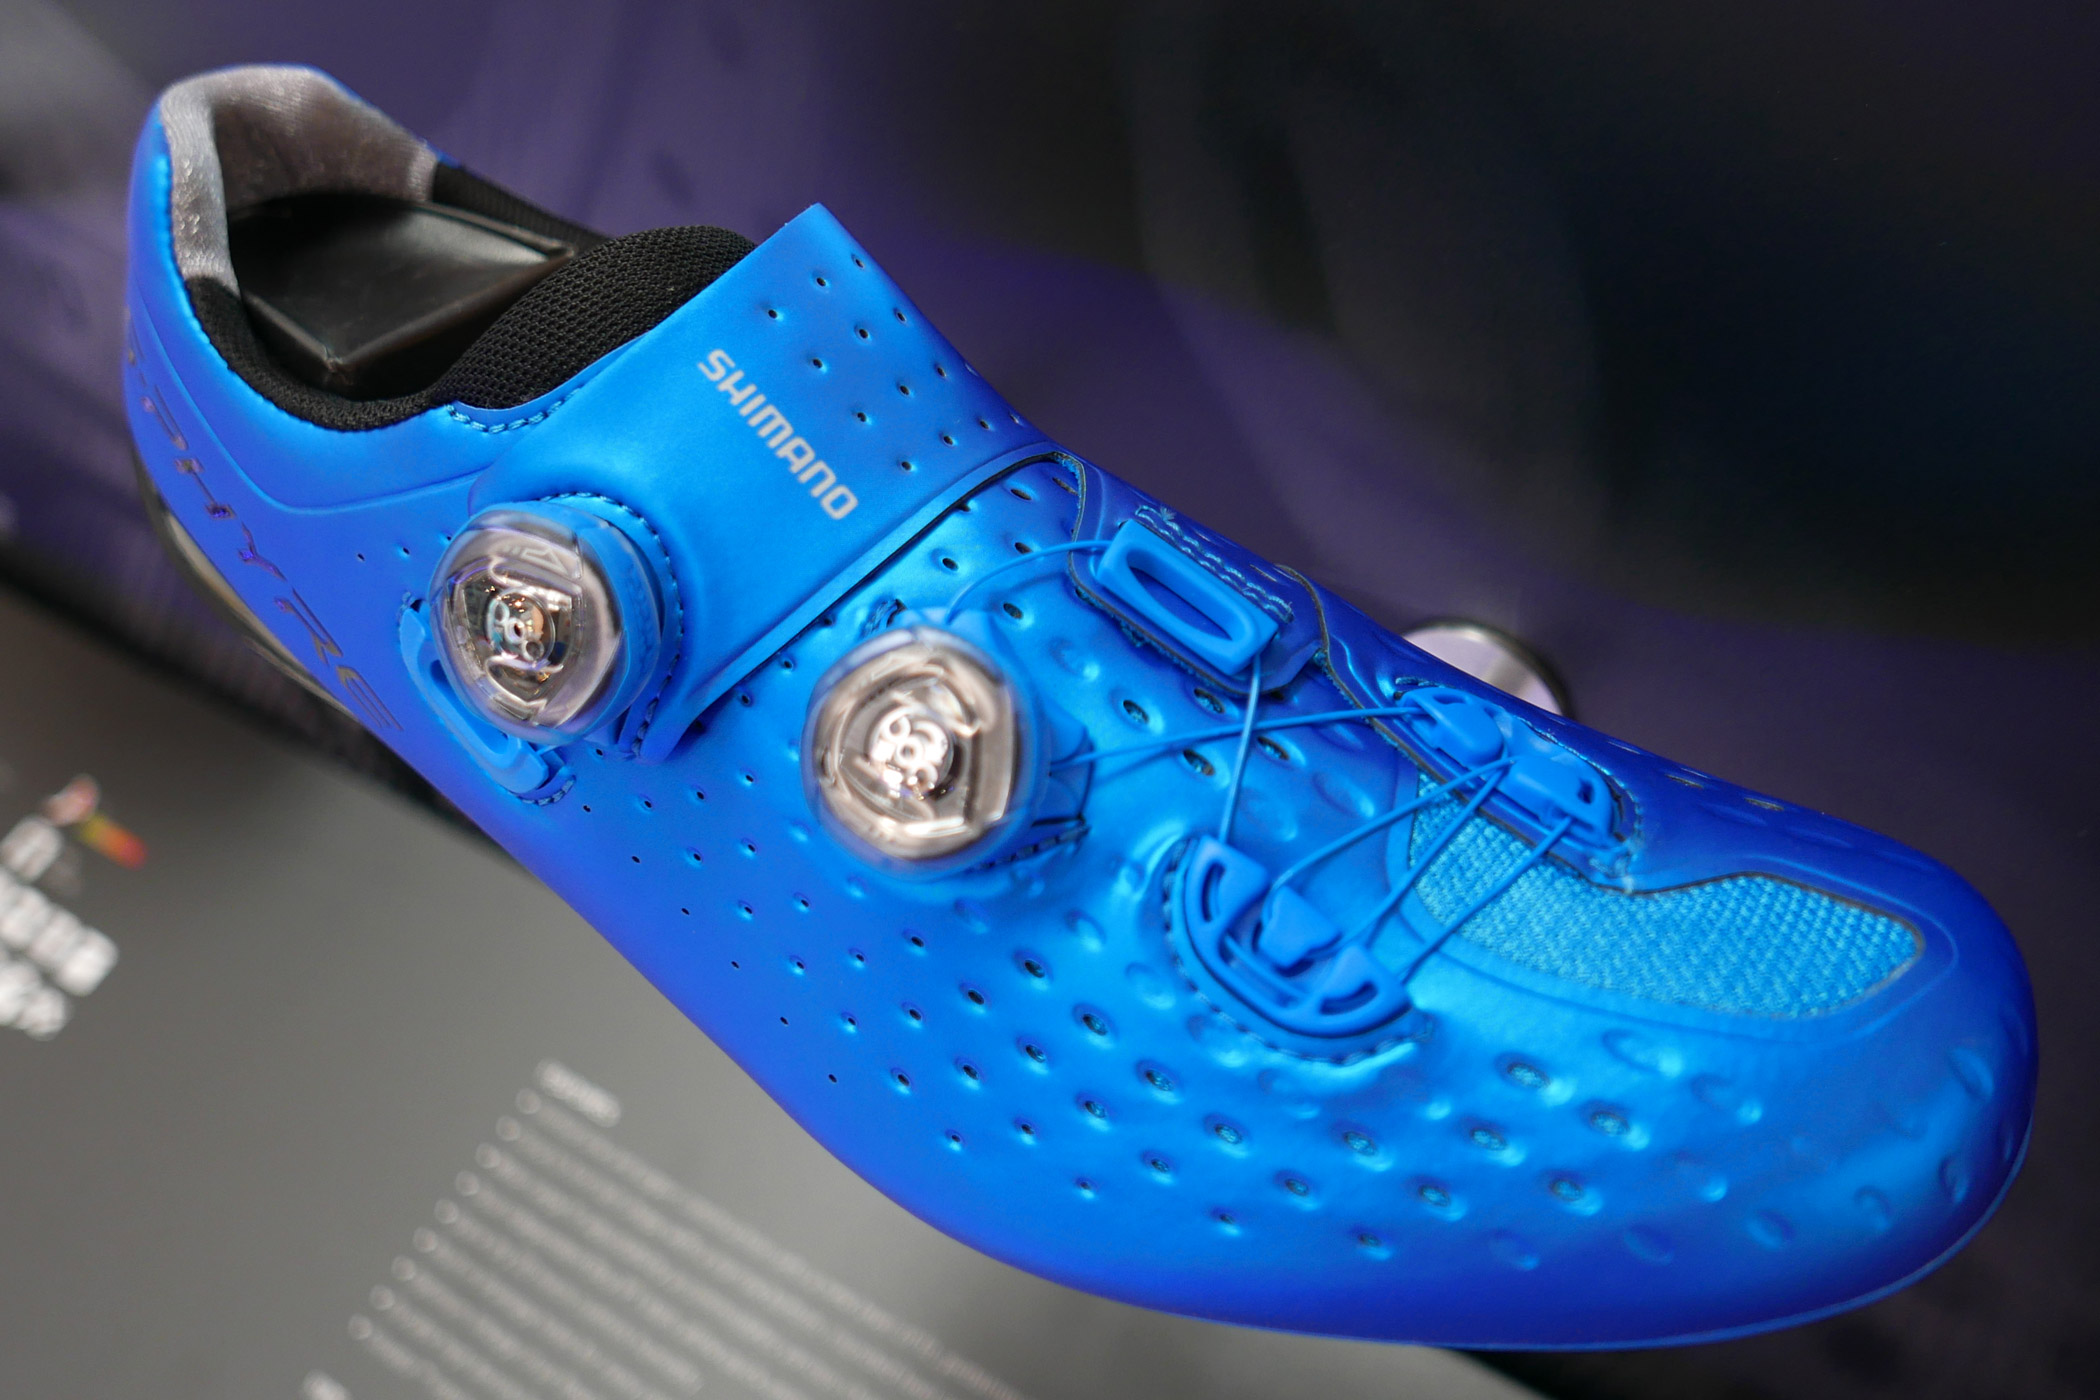 Eb16 Shimano Steps Out With Top S Phyre Carbon Soled